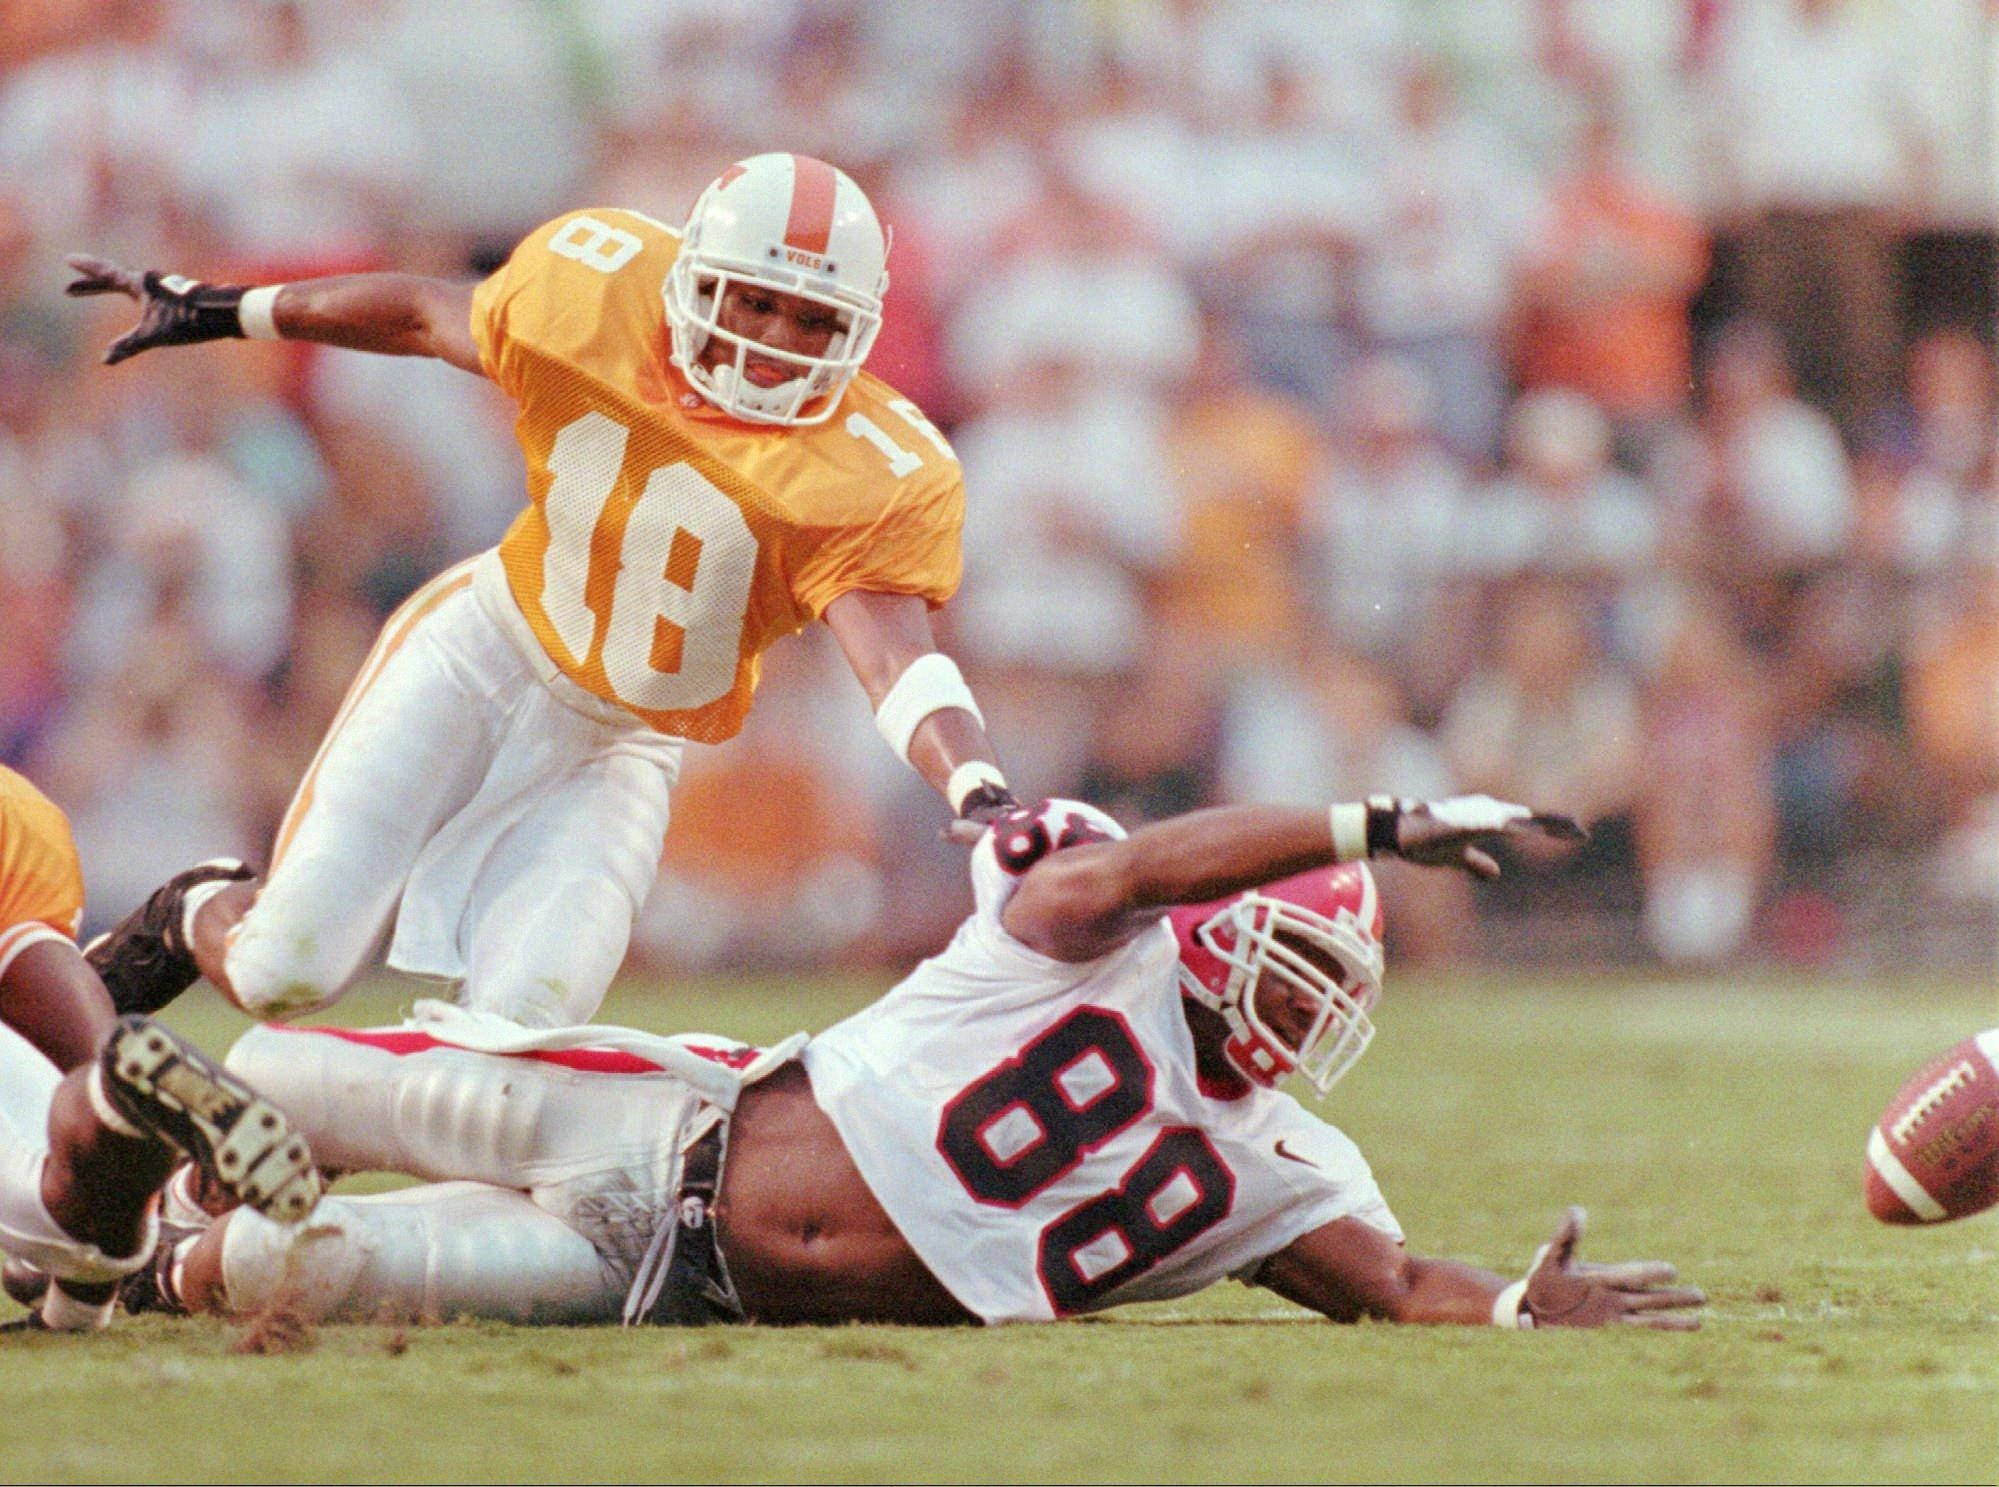 -  -Georgia's Brice Hunter (88) dives in vain for an incomplete pass as he is defended by Tennessee's DeRon Jenkins (18) during their game in Knoxville, Tenn., on Saturday, Sept. 9, 1995. (